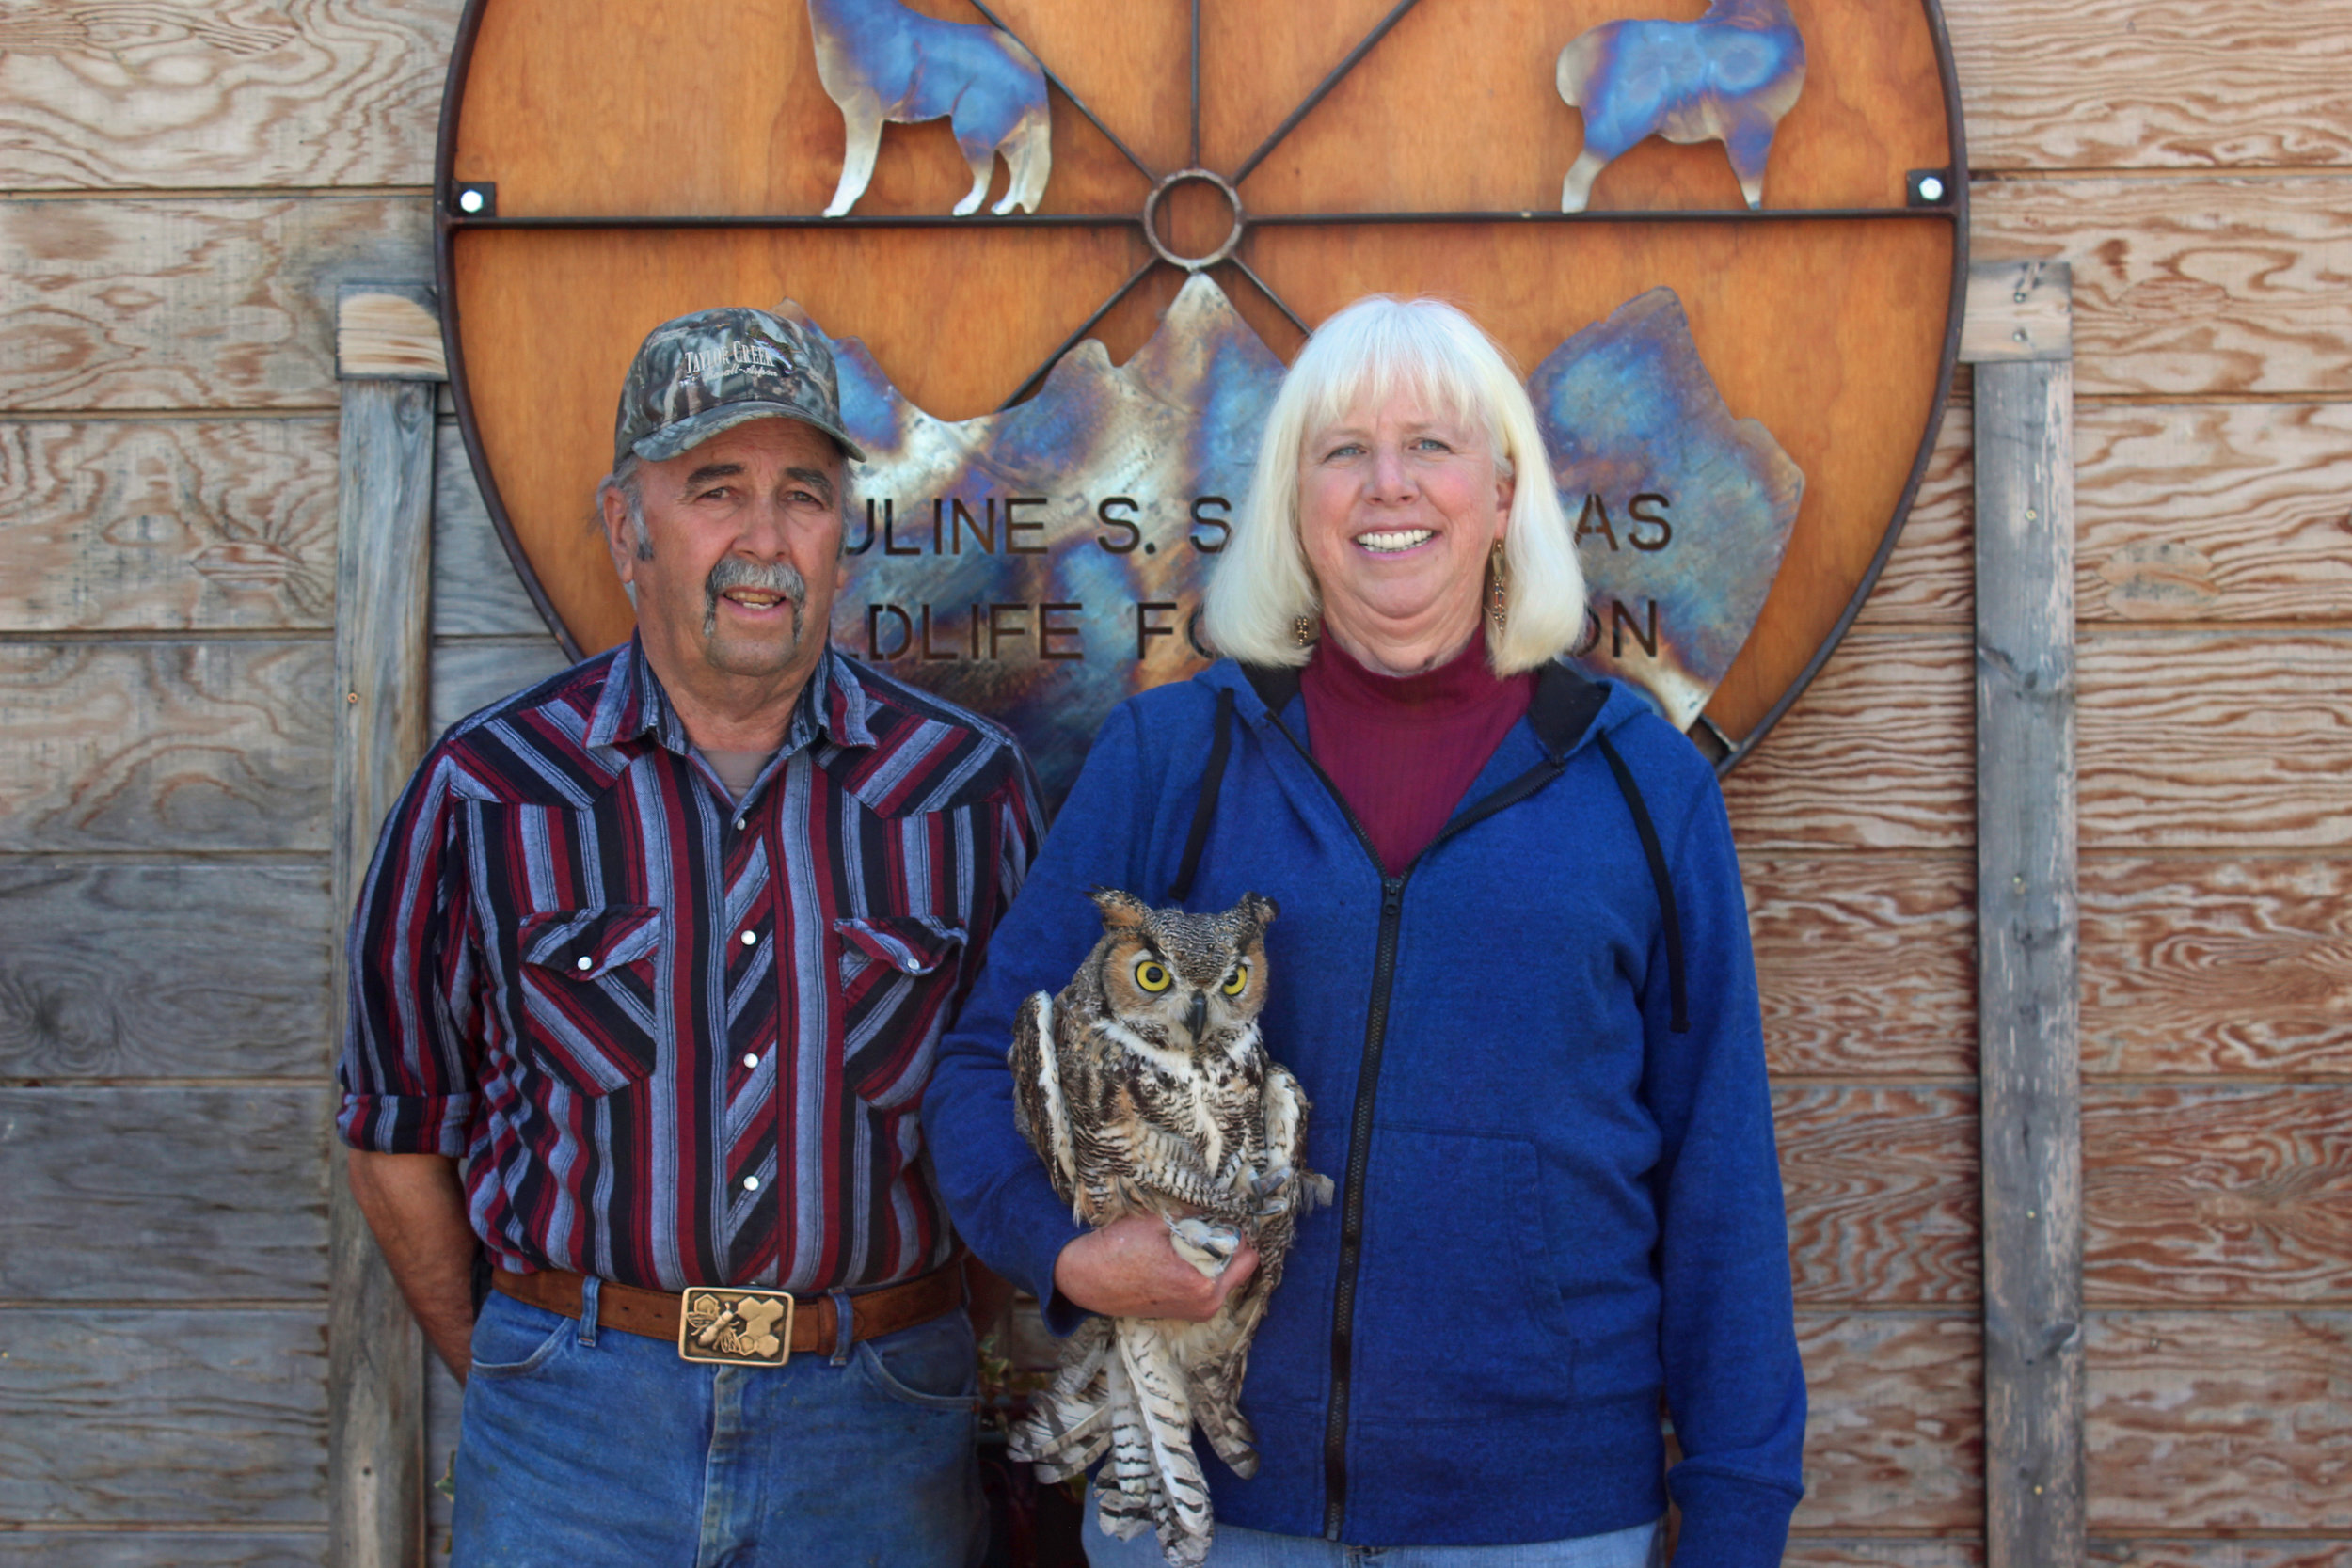 Nanci Limbach - Nanci founded PSSWF, and has donated her time to the Foundation since it began. She is a Certified Veterinary Technician and maintains her teaching certificate and is a licensed wildlife rehabilitator in the state of Colorado. She teaches a class on wildlife management for Colorado Mountain College's Vet Tech program. She is pictured here with her husband, Paul, and former educational owl Gandalf.